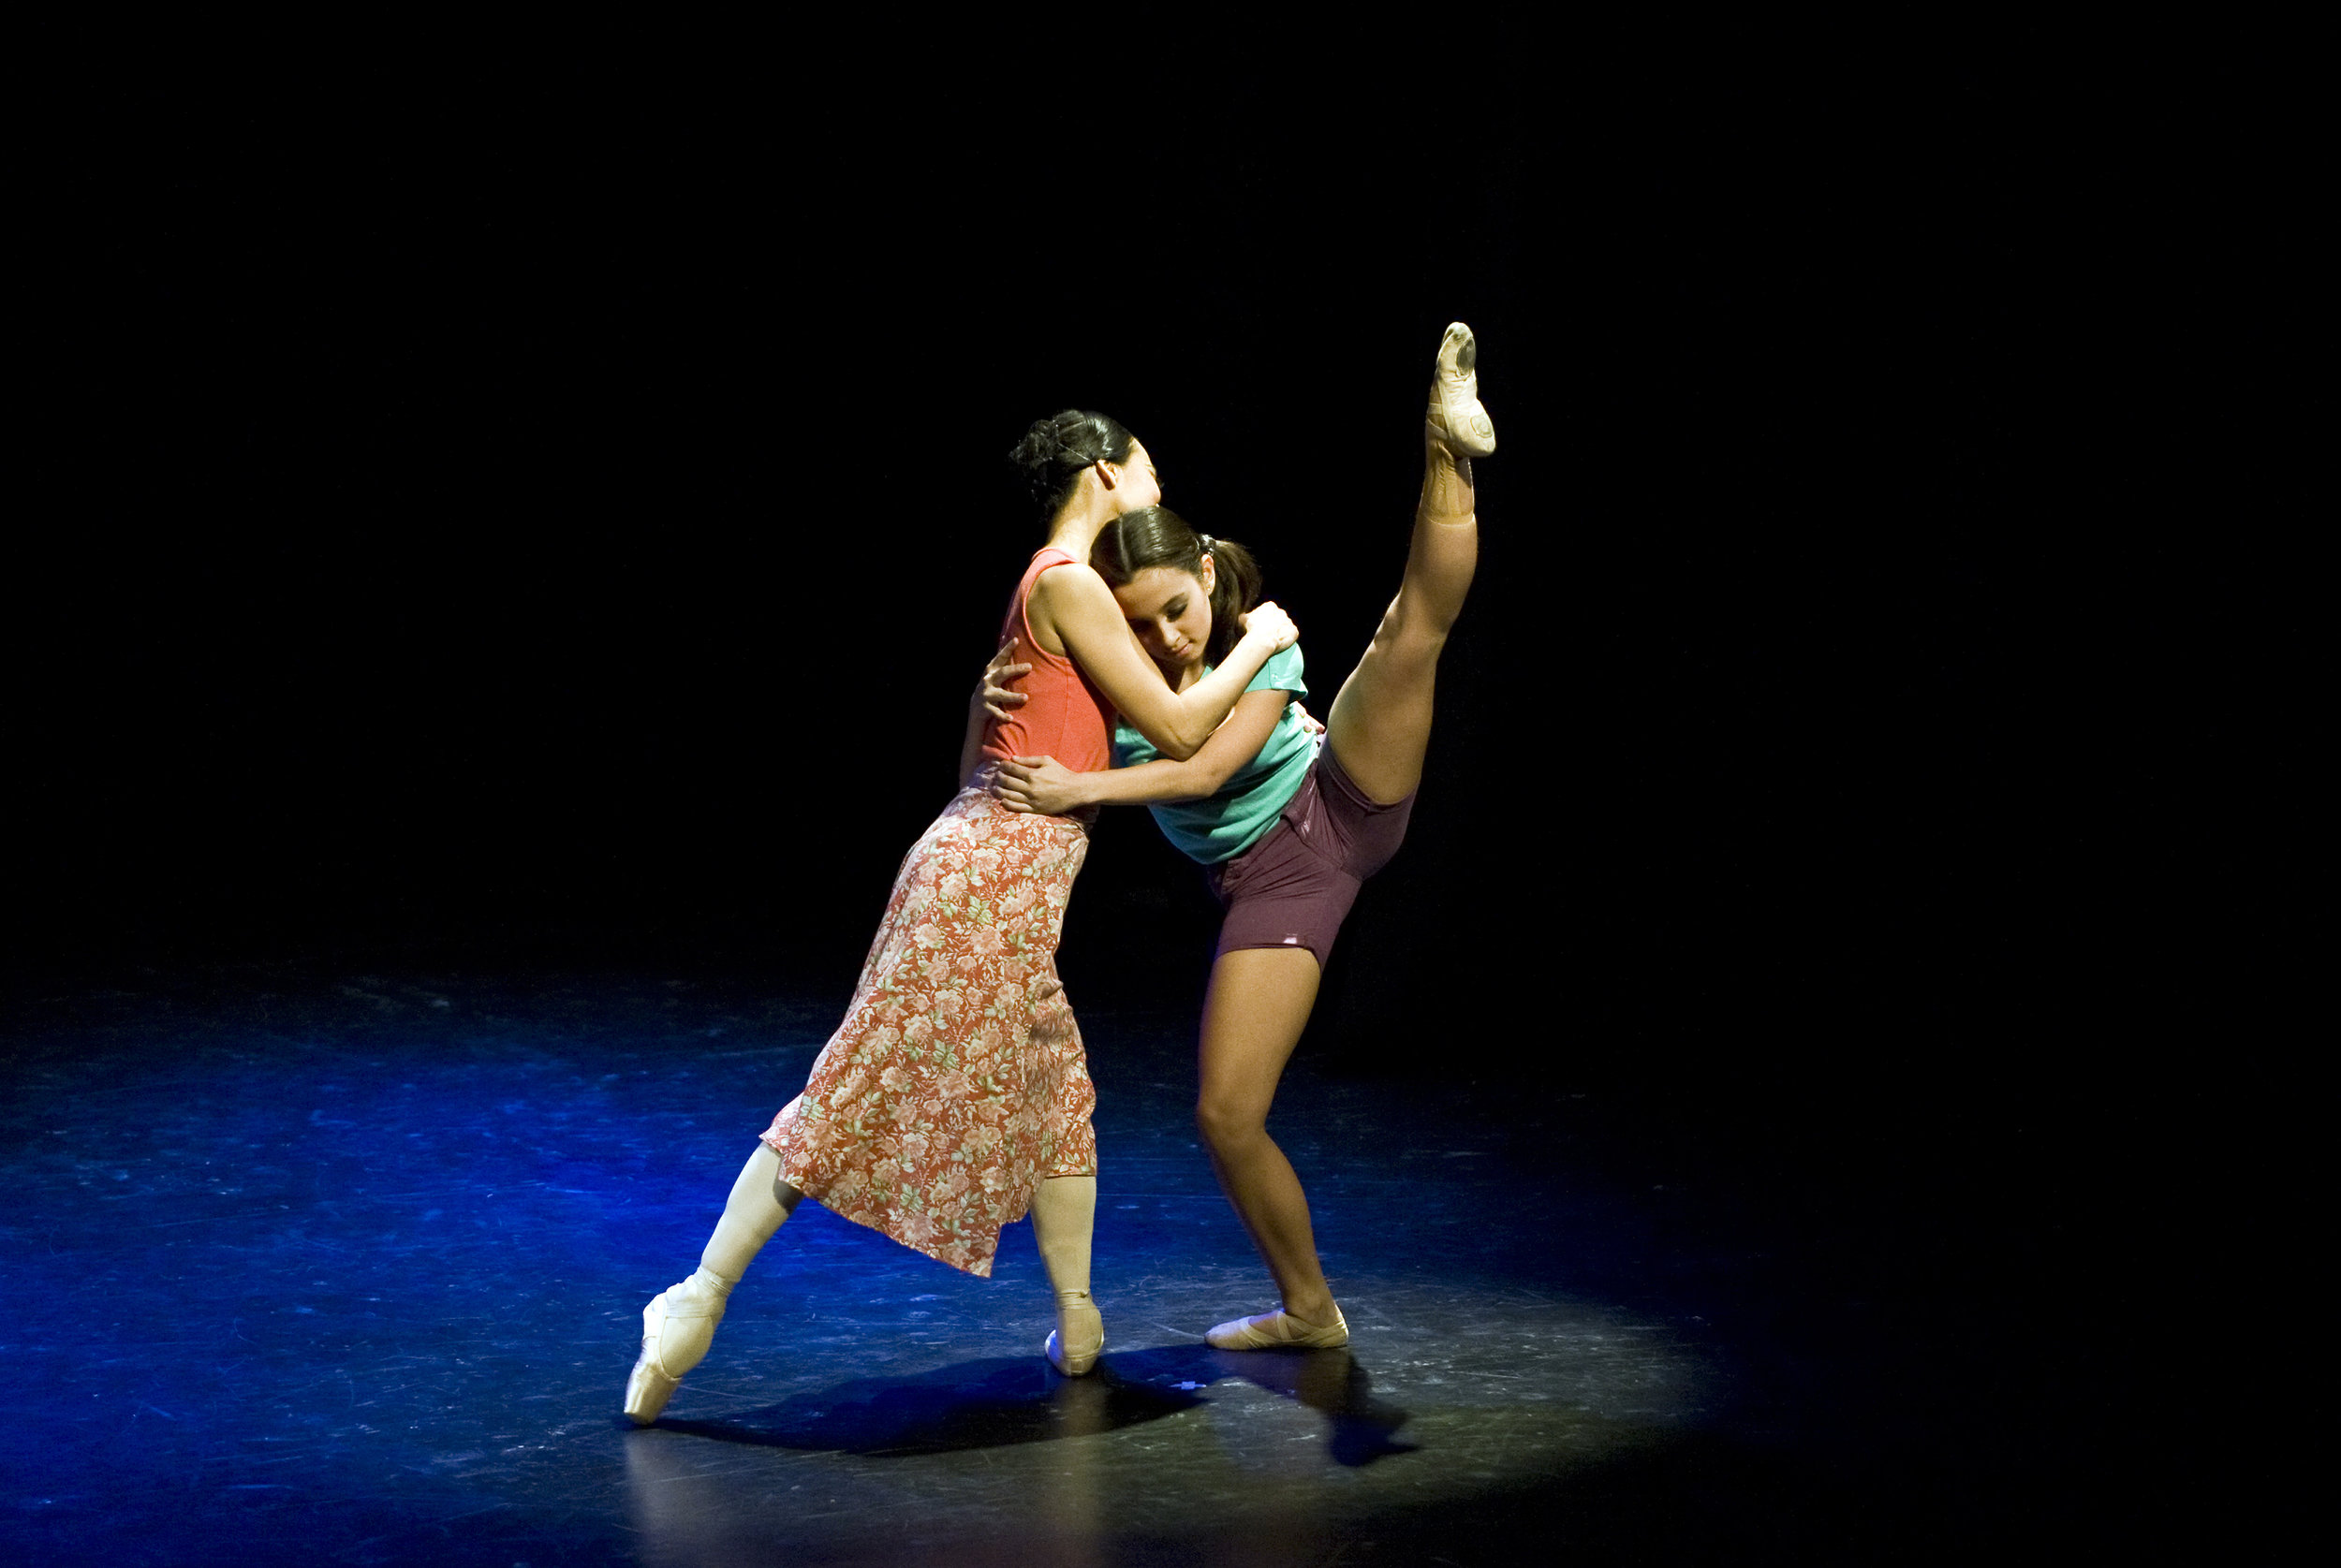 Lisa and Missy share a warm embrace in  Ina , a choreography of Gerardo Francisco, which they performed in 2011 as part of Ballet Manila's  East Meets West  tour in England and Ireland. Photo by Philip Taylor Photography